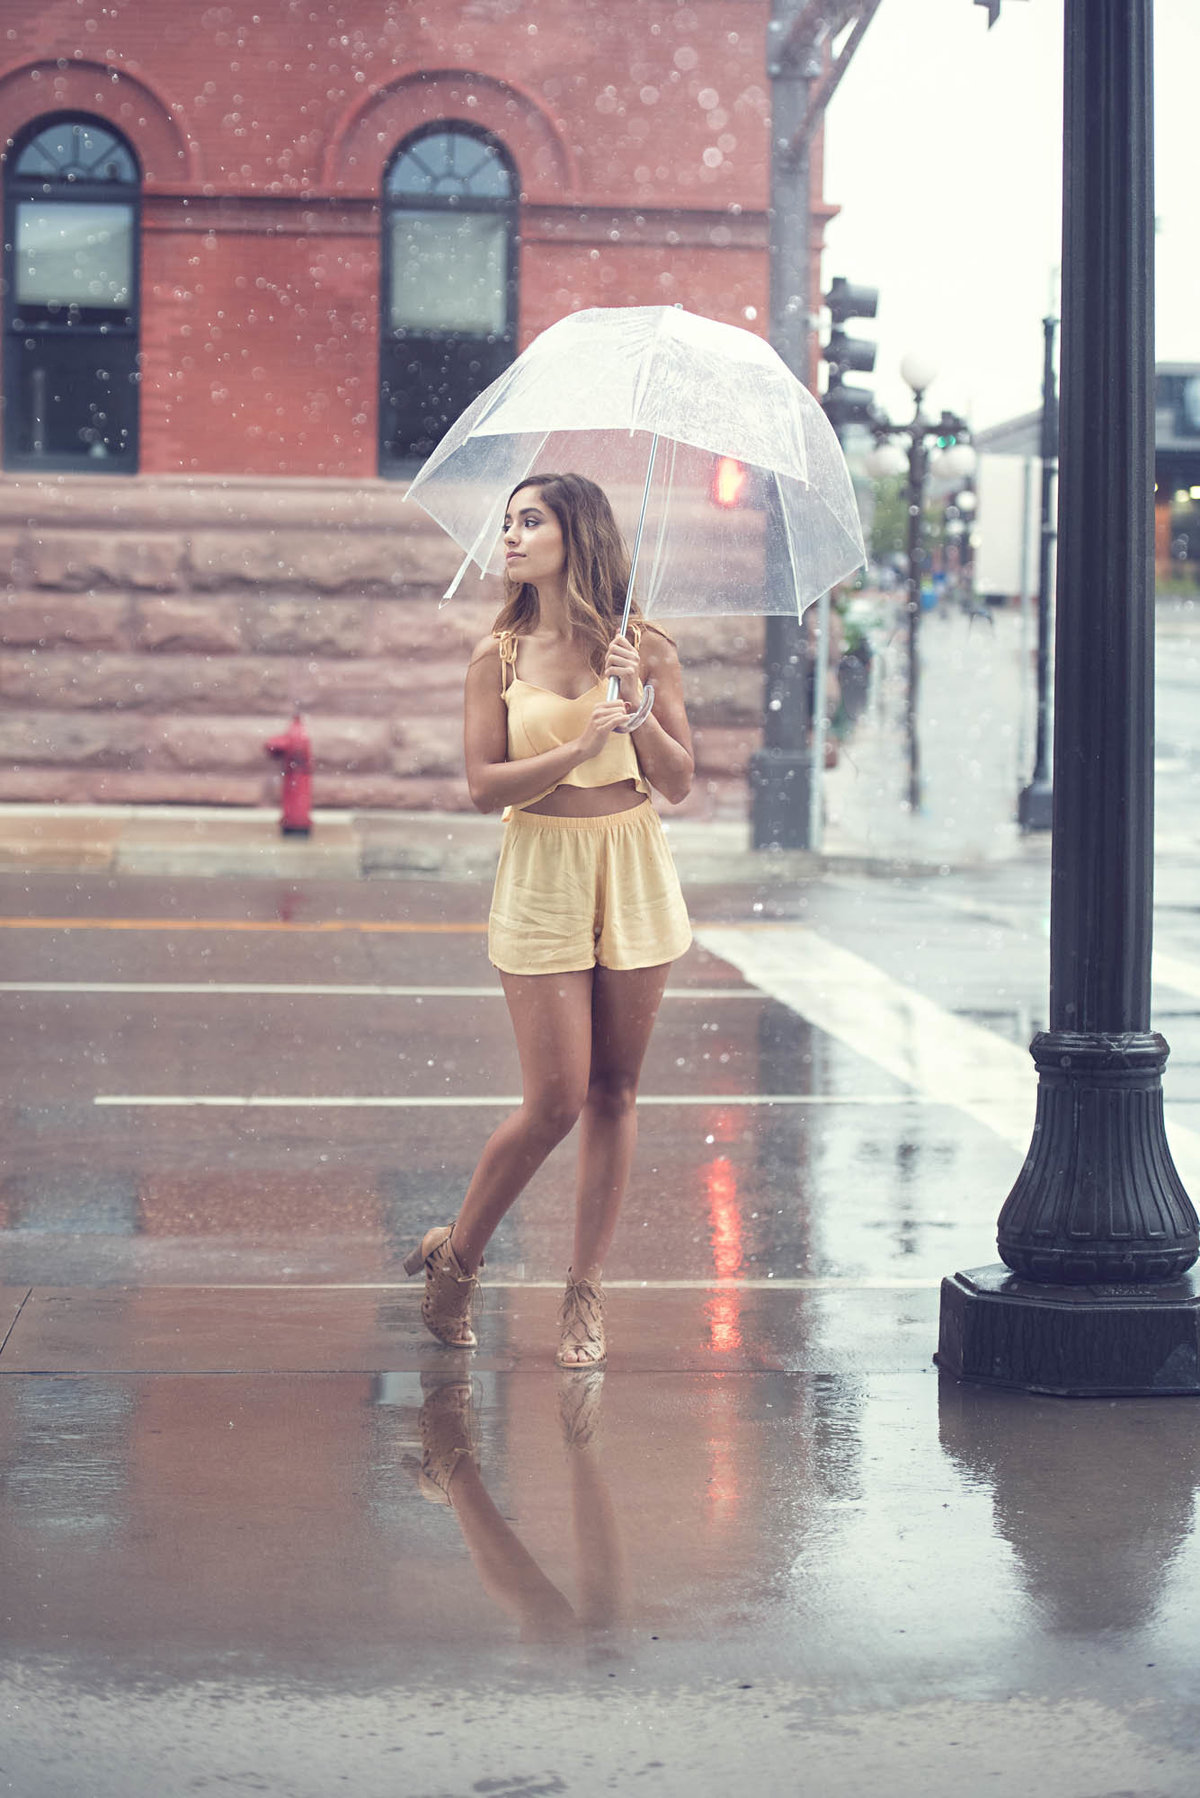 Senior picture in rain with umbrella in St. Paul